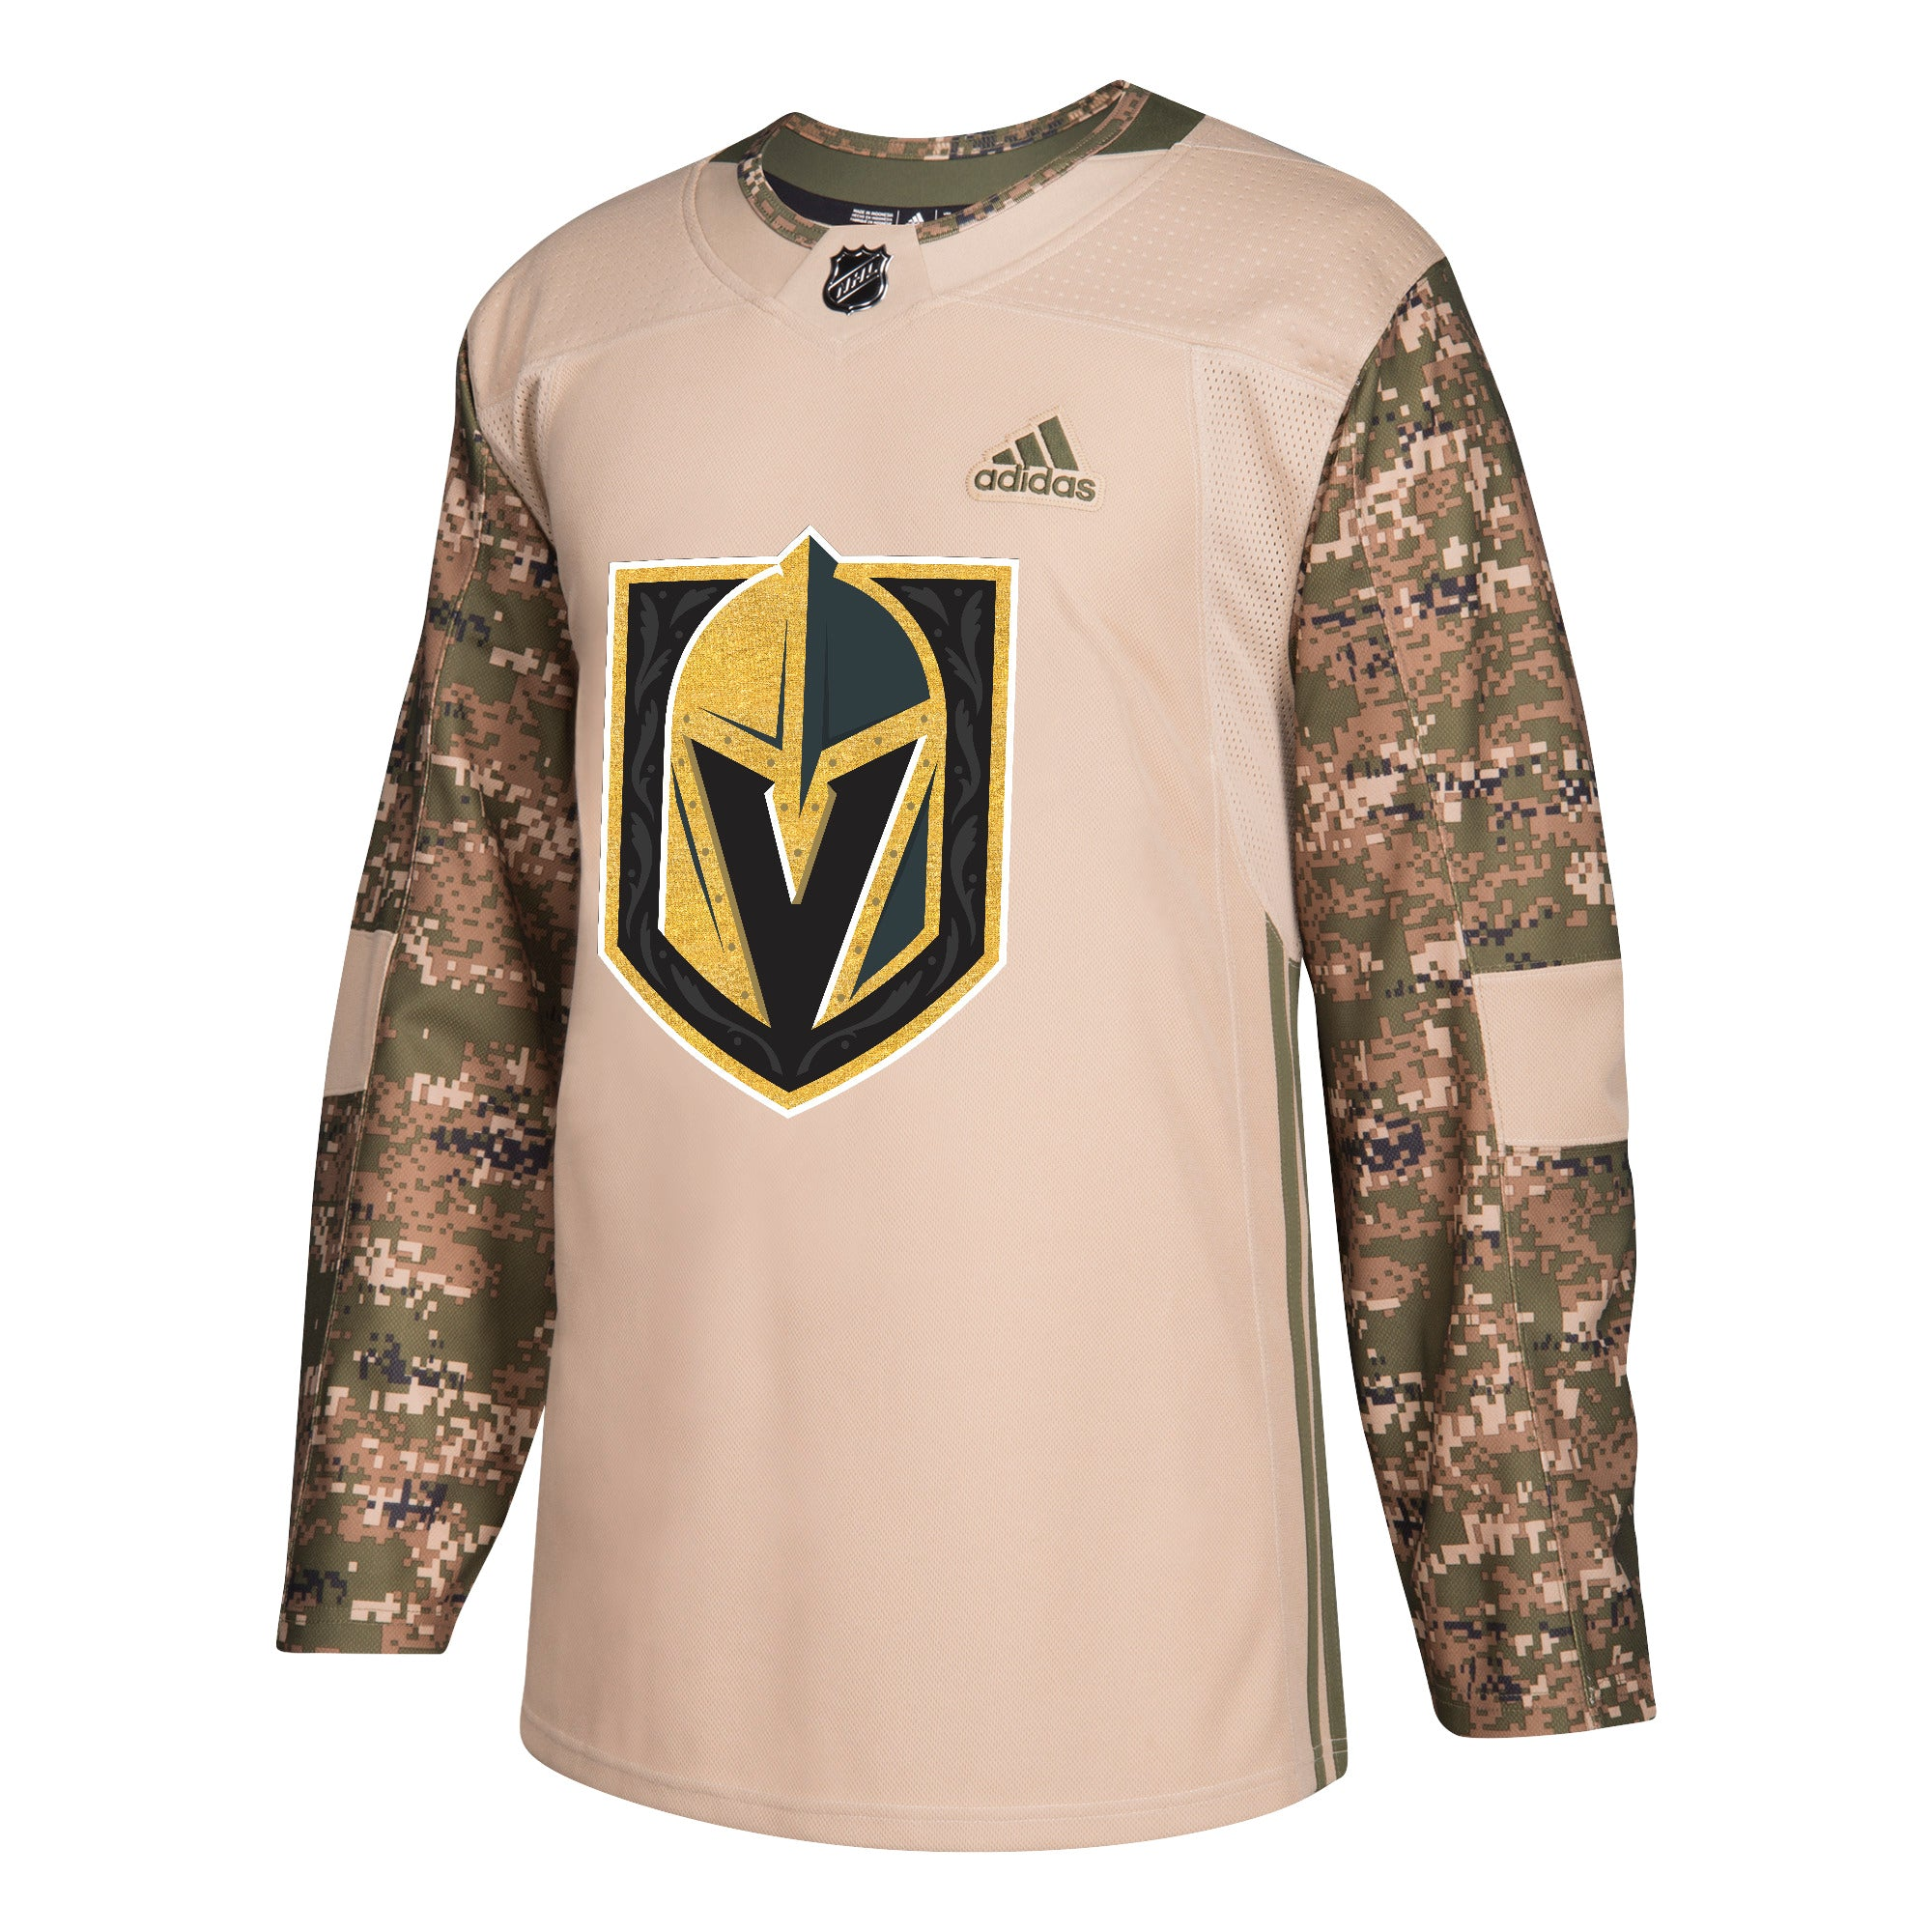 timeless design 5ae2f 95583 Military Camo Khaki Las Vegas Golden Knights 258J Adidas NHL Authentic Pro  Jersey